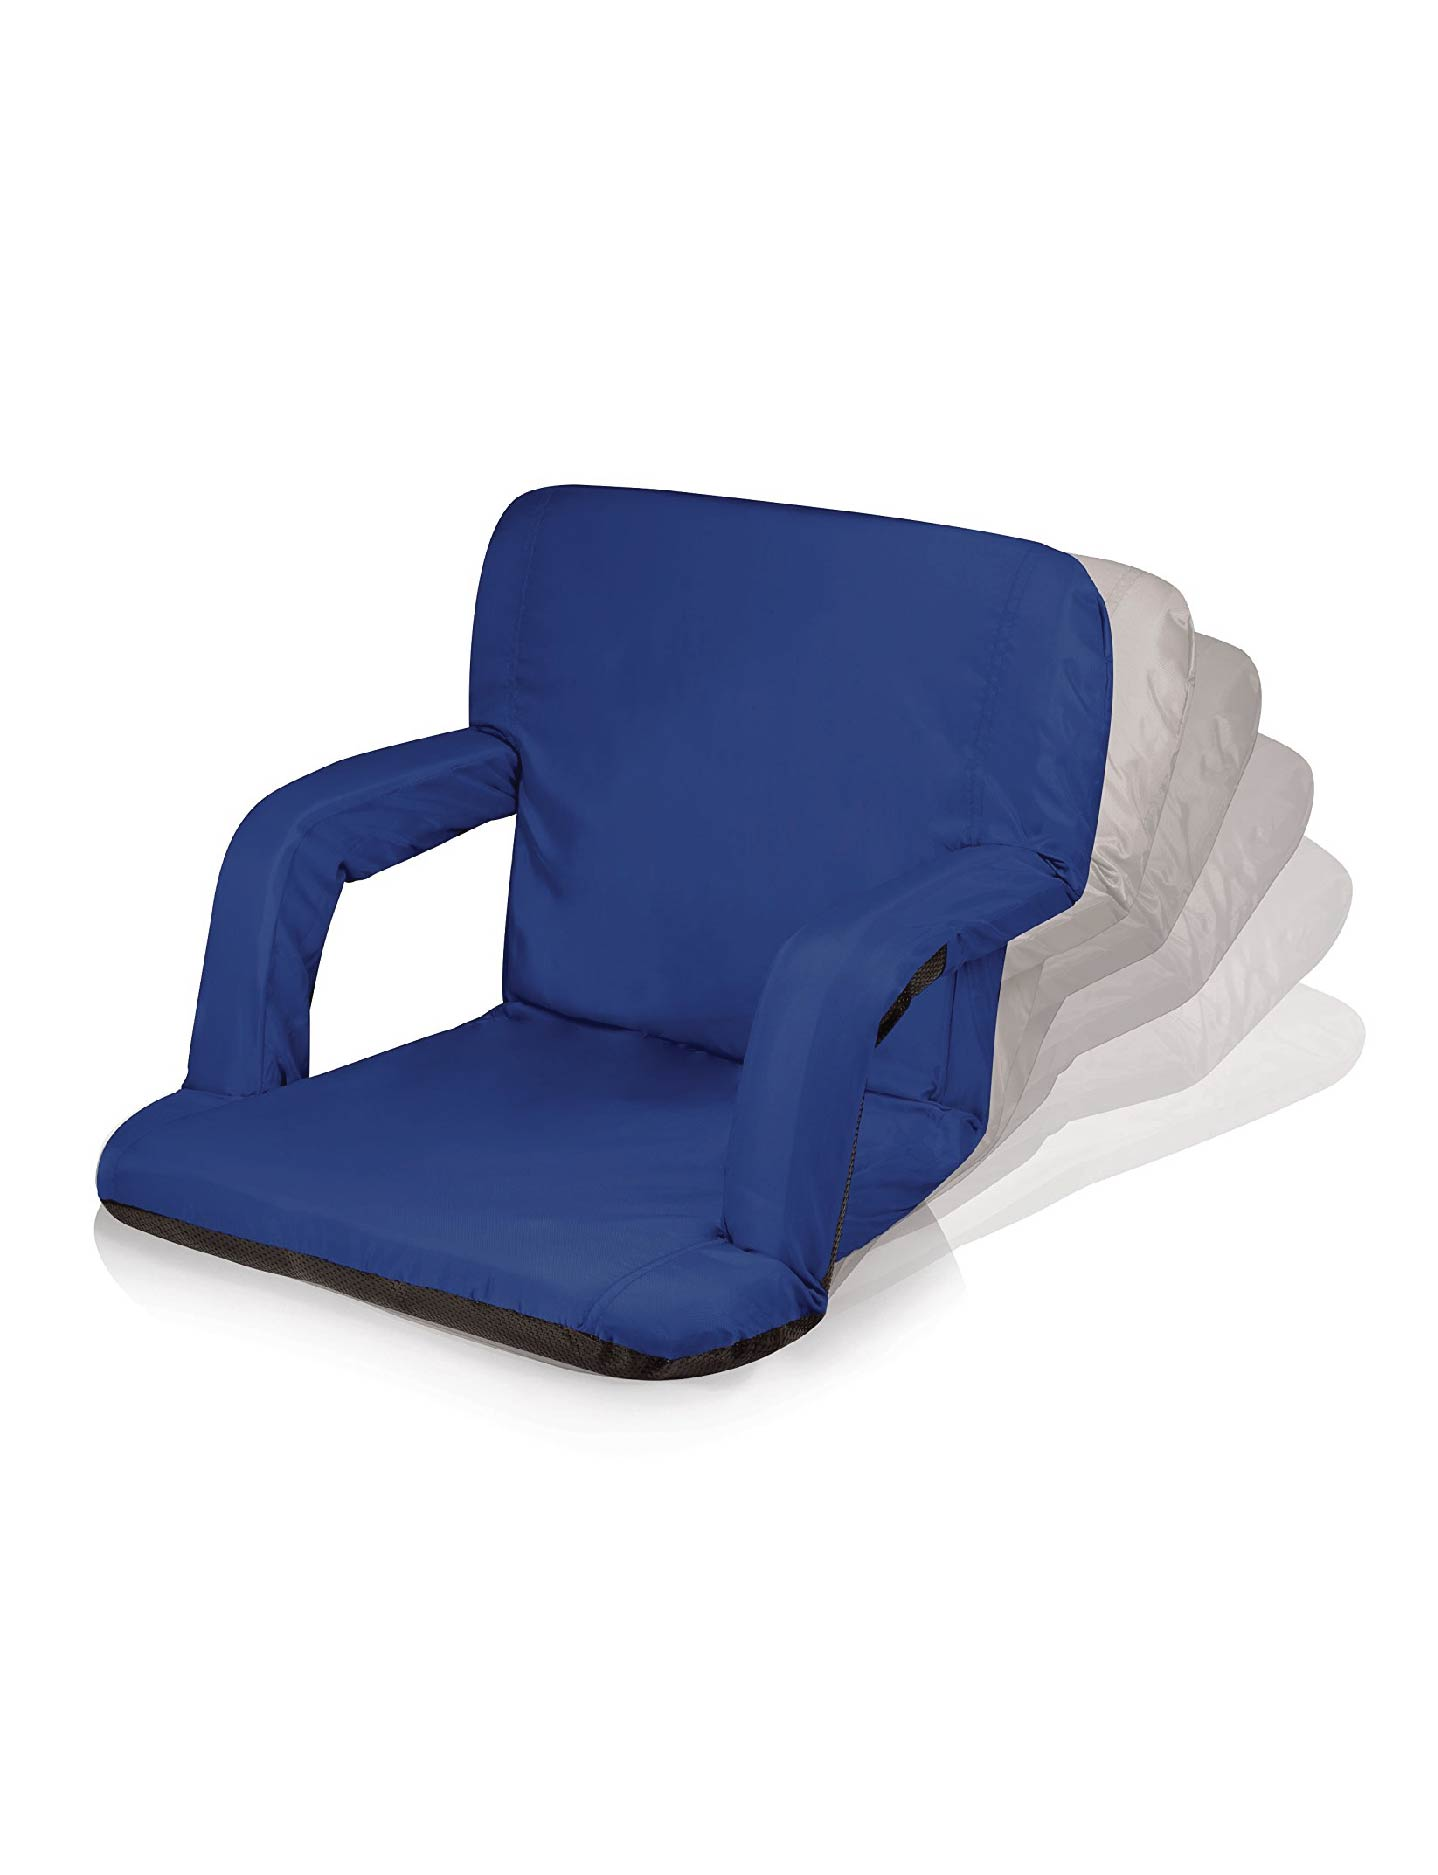 Picnic Folding Chair with Backrest